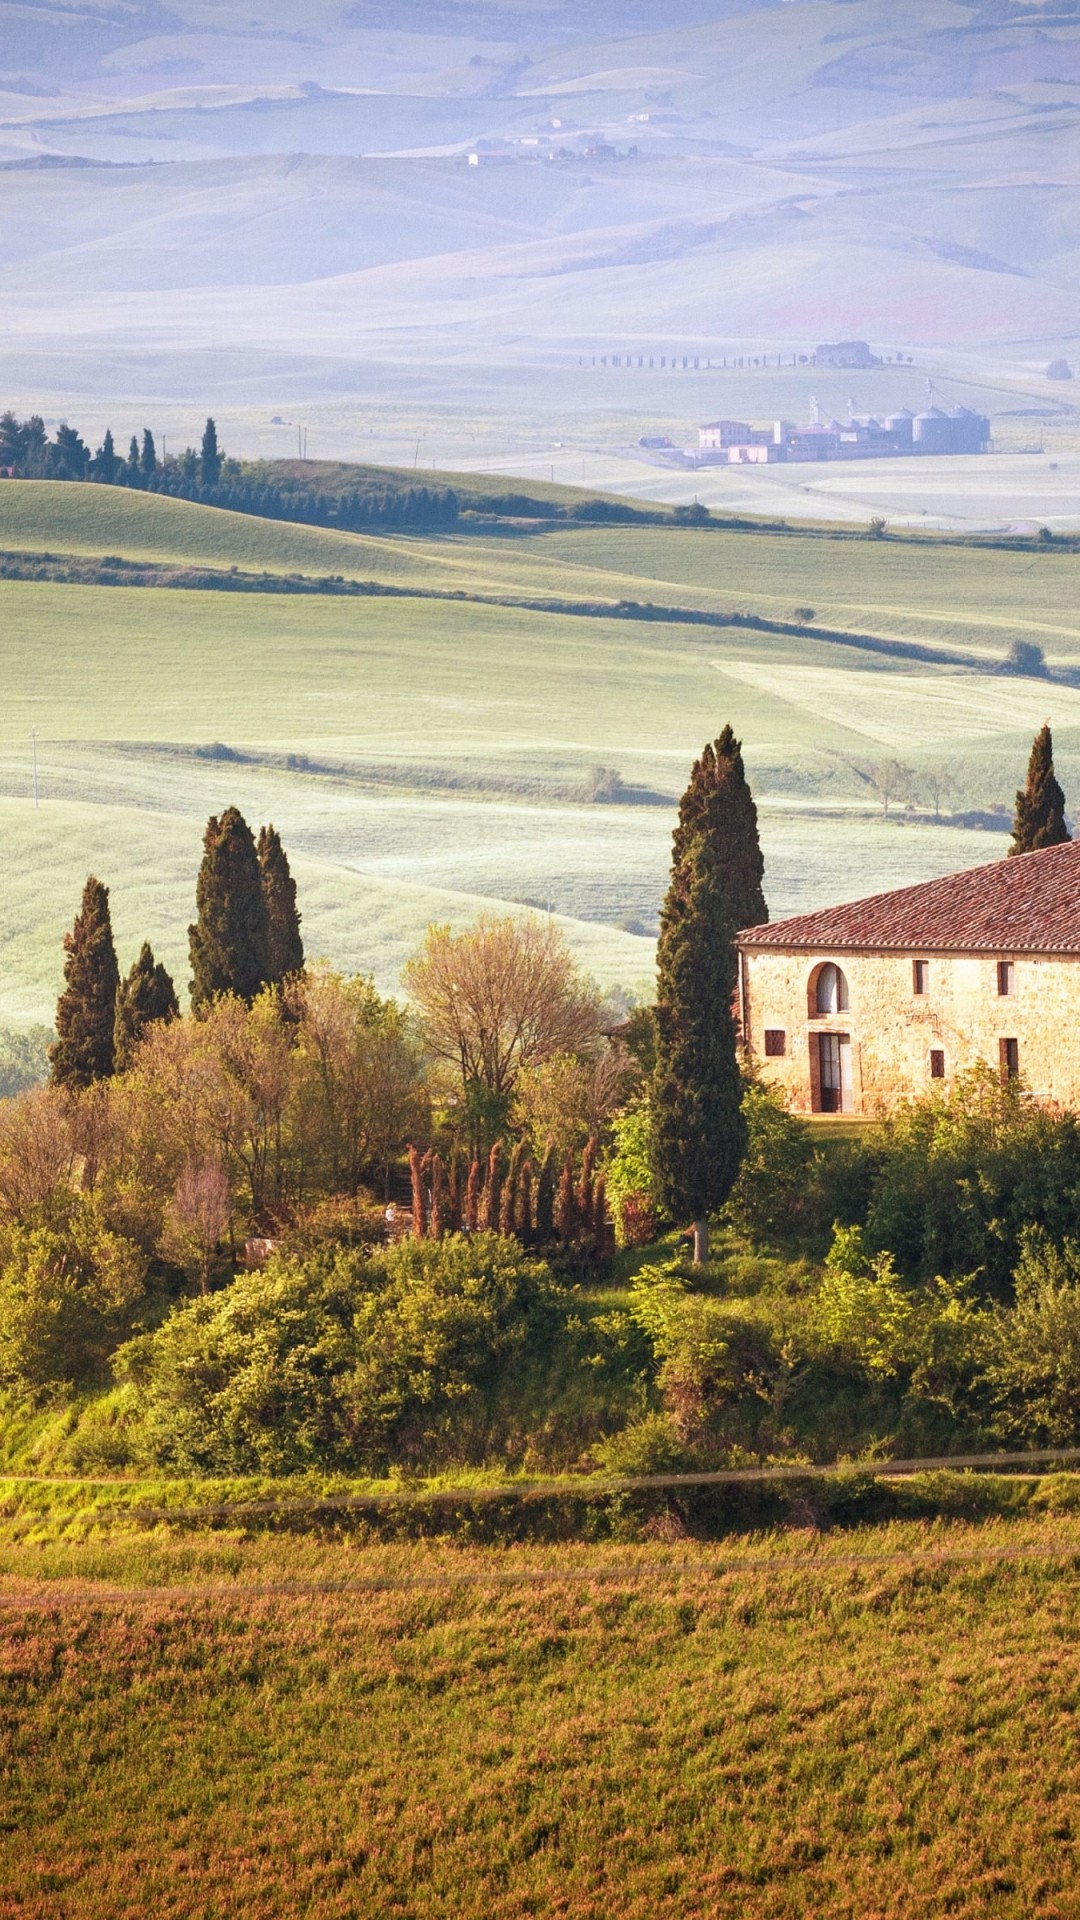 Summer in Tuscany, Italy Wallpaper for SAMSUNG Galaxy S4